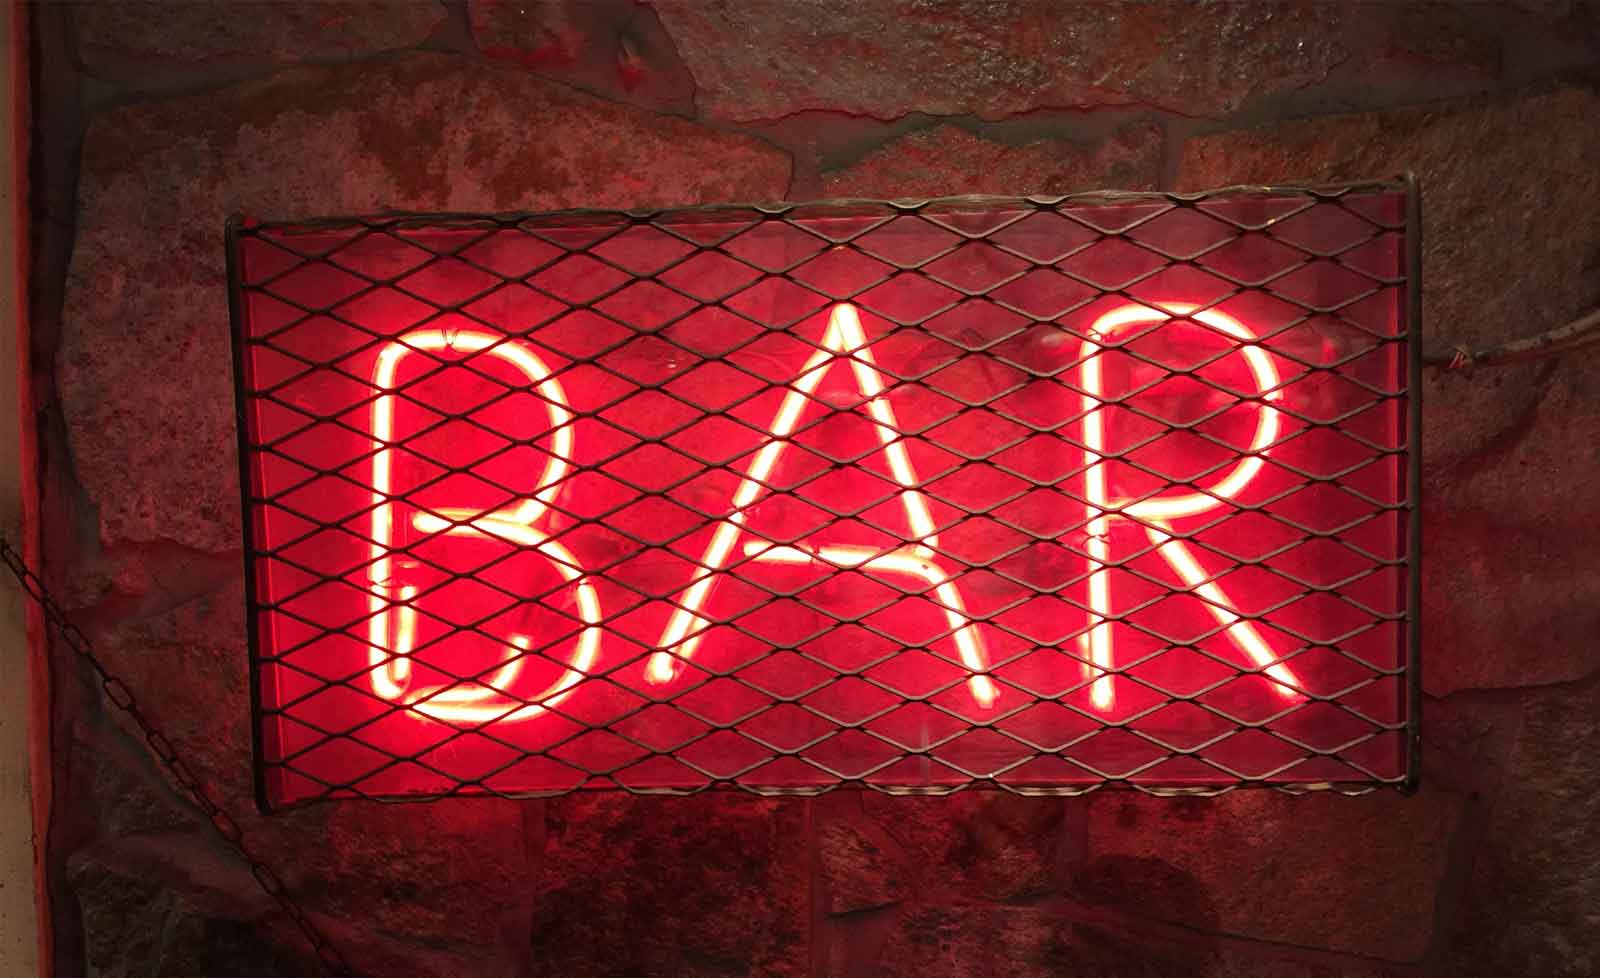 Wall mural photo wallpaper xxl bar neon light sign grid grille jd image is loading wall mural photo wallpaper xxl bar neon light aloadofball Images